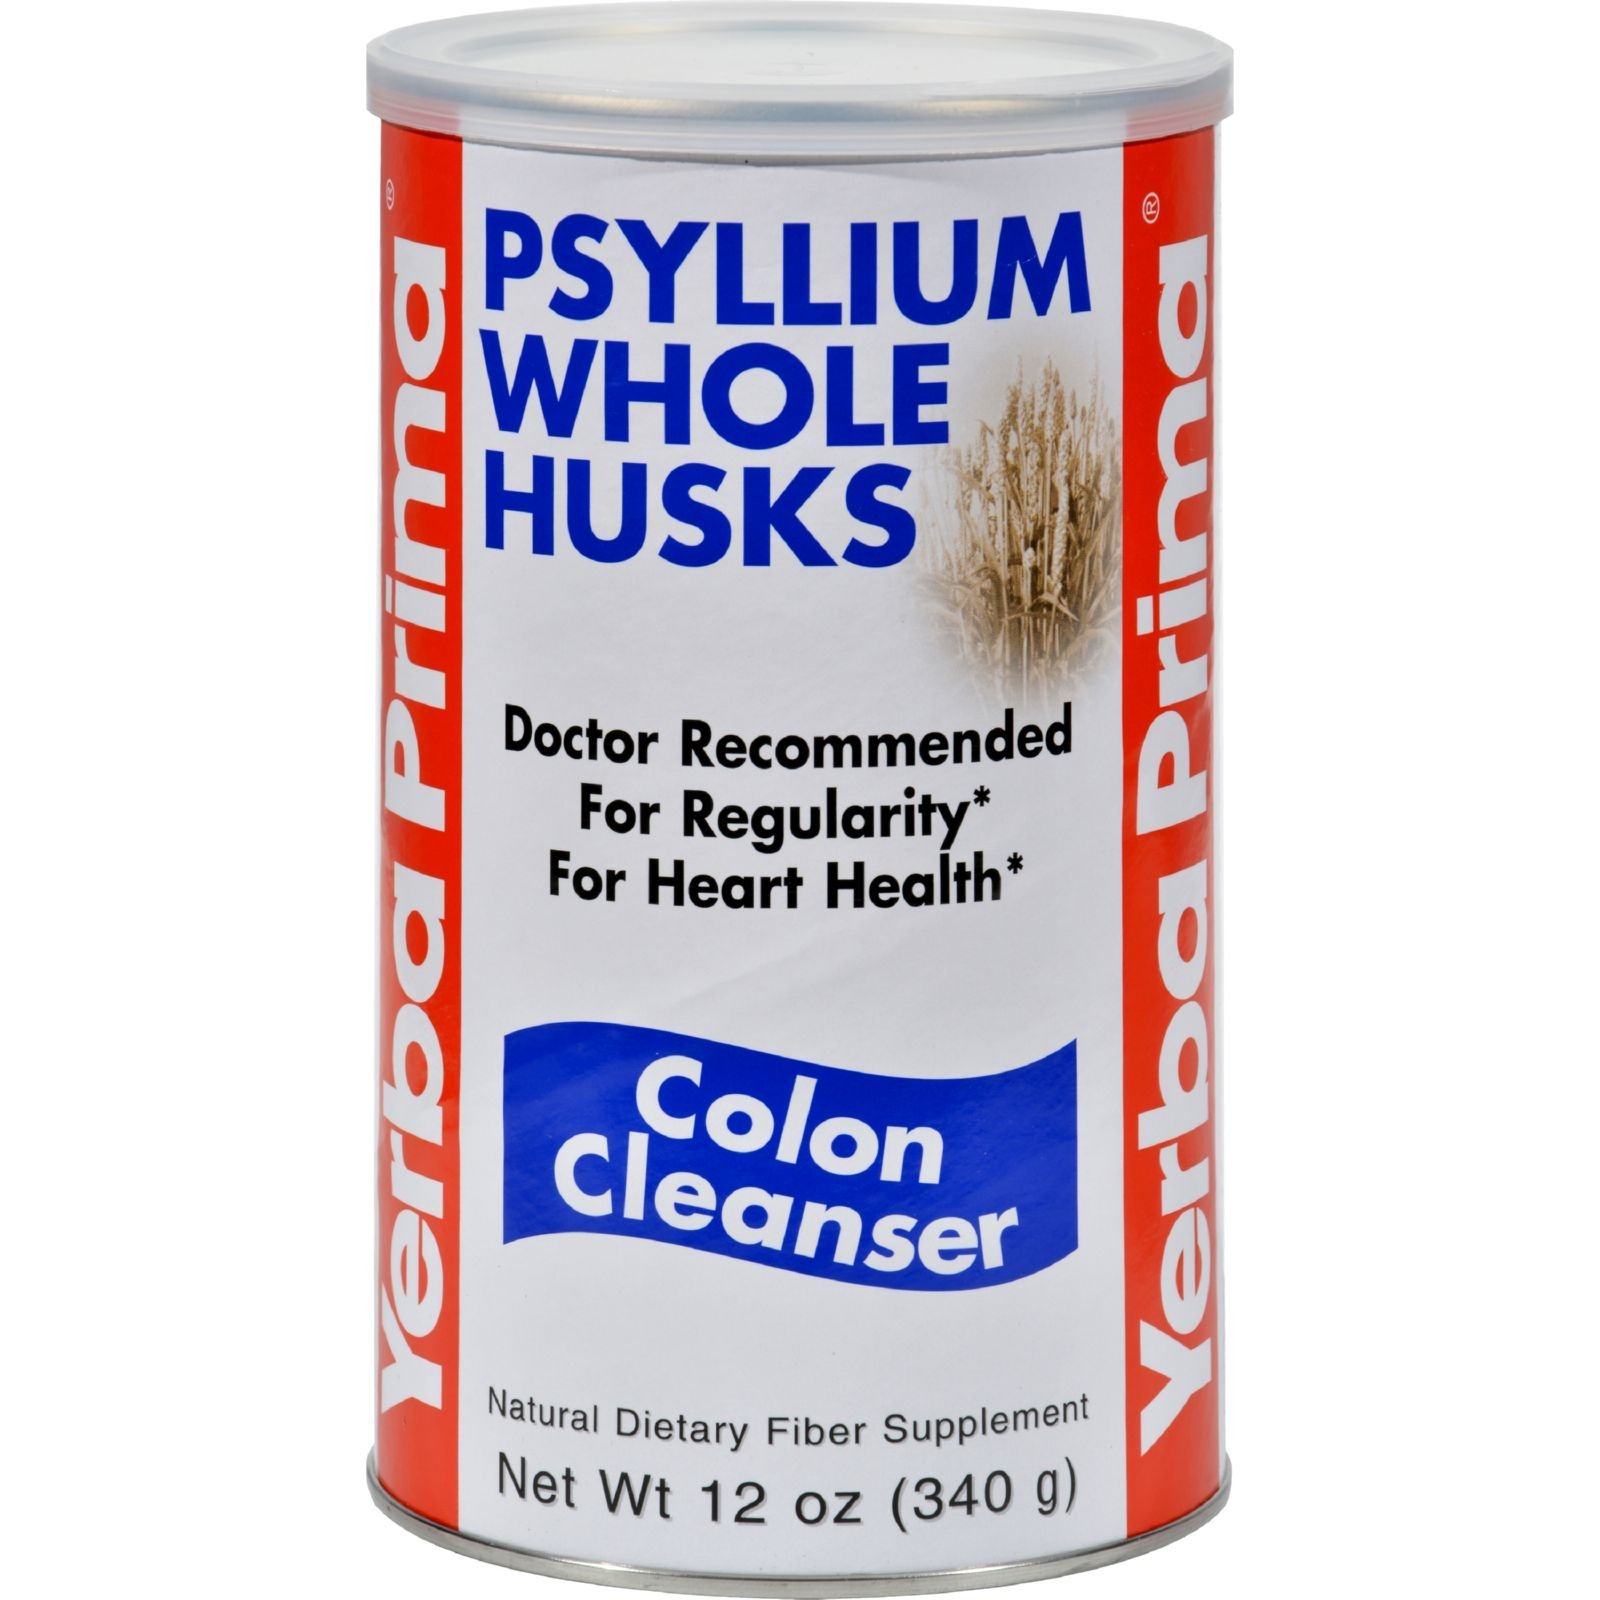 Yerba Prima Psyllium Whole Husks, Colon Cleanser 12 oz ( Pack of 2) by Yerba Prima